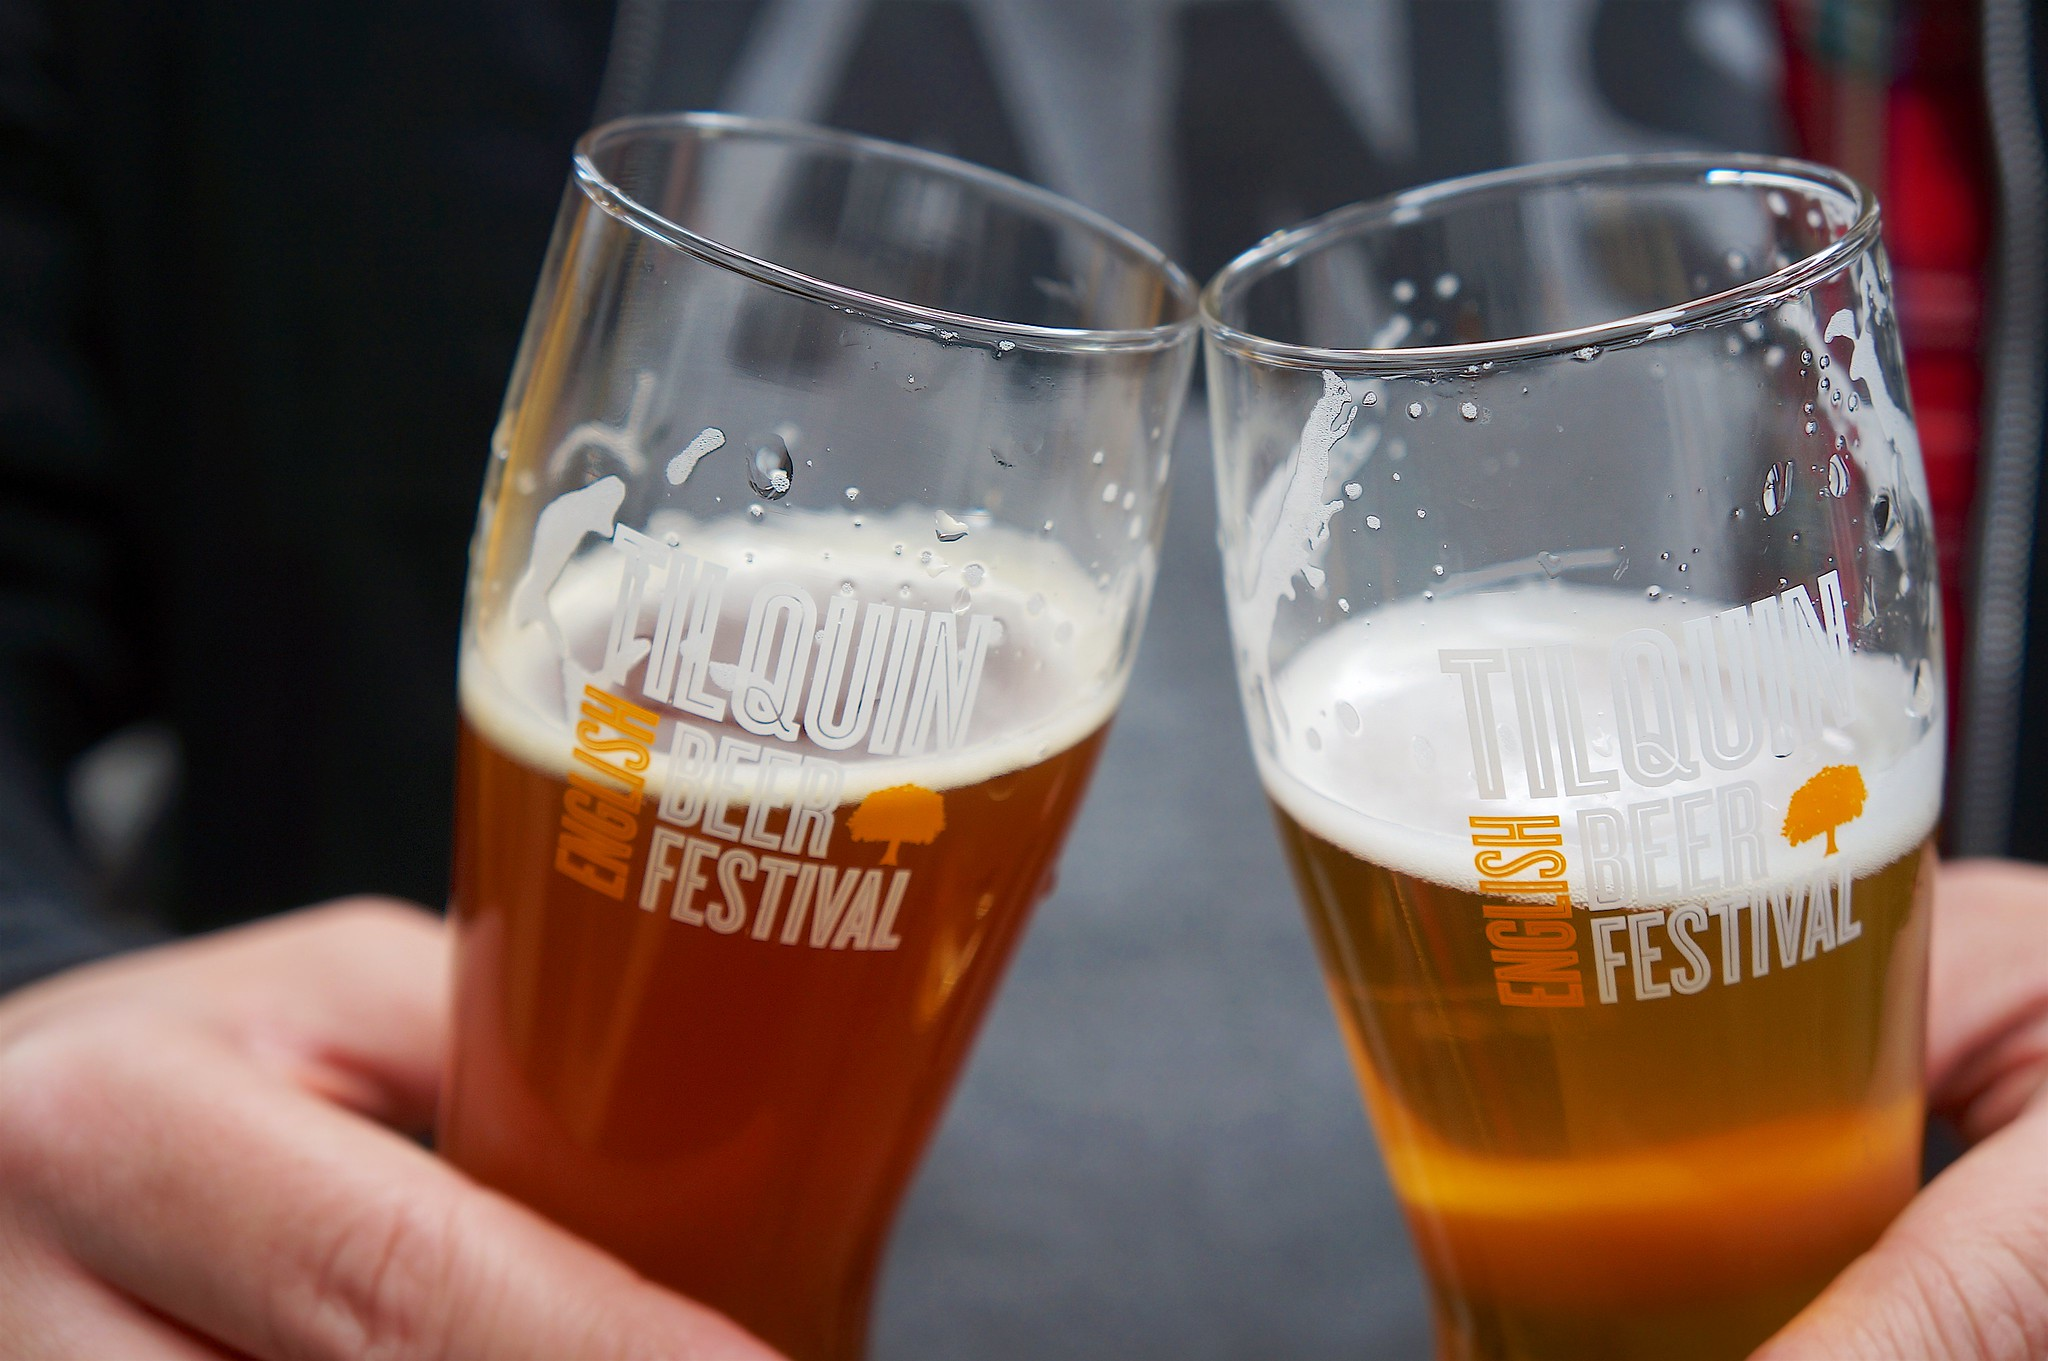 Tilquin English Craft Beer Festival